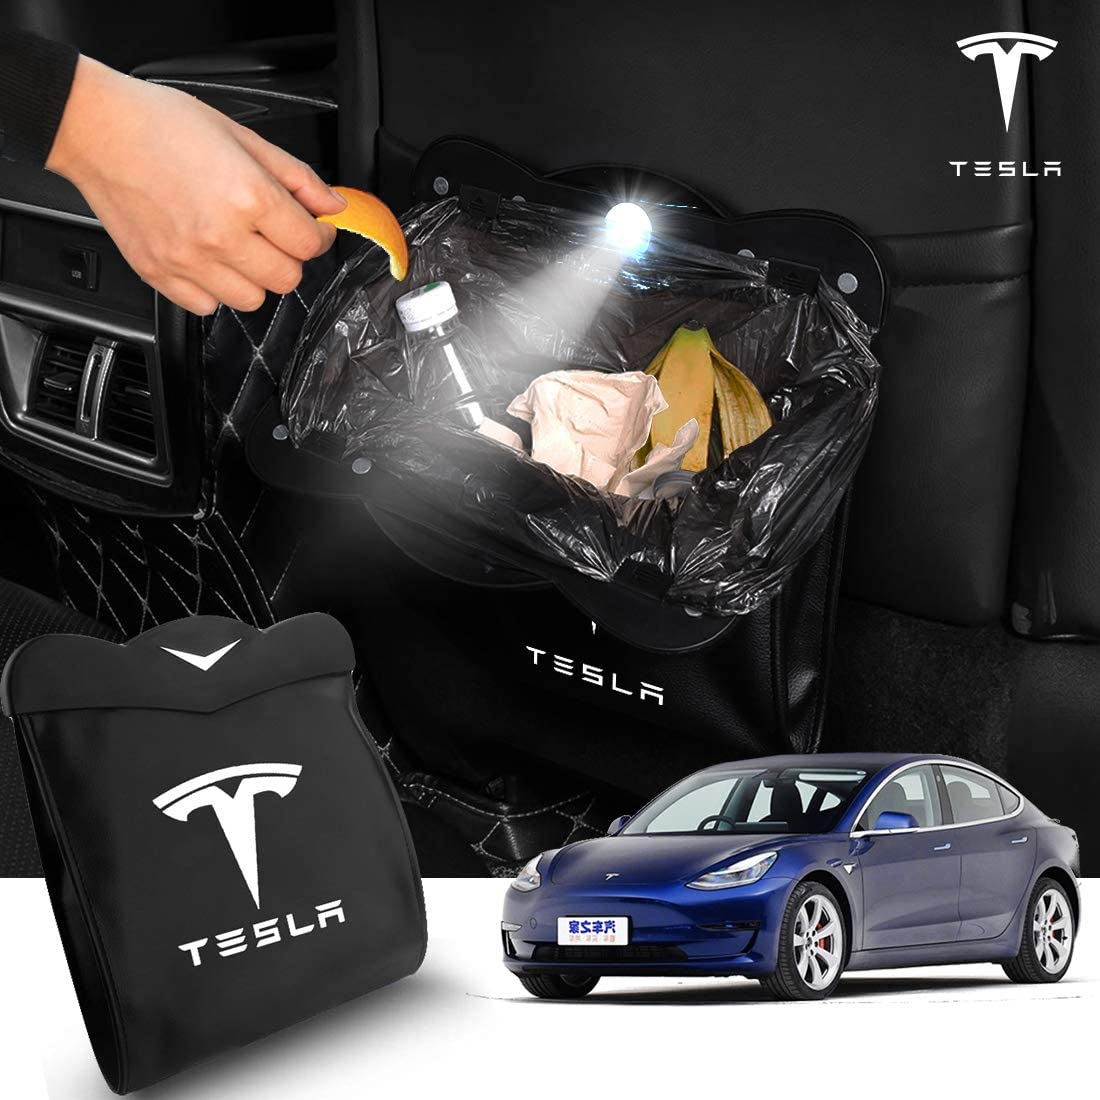 HACHISHOP Car Trash Bag with Superior Leather Compatible with Tesla Model 3 Hanging and Magnet Closure Vehicle Rubbish Container Garbage Can and Storage Bin Pockets